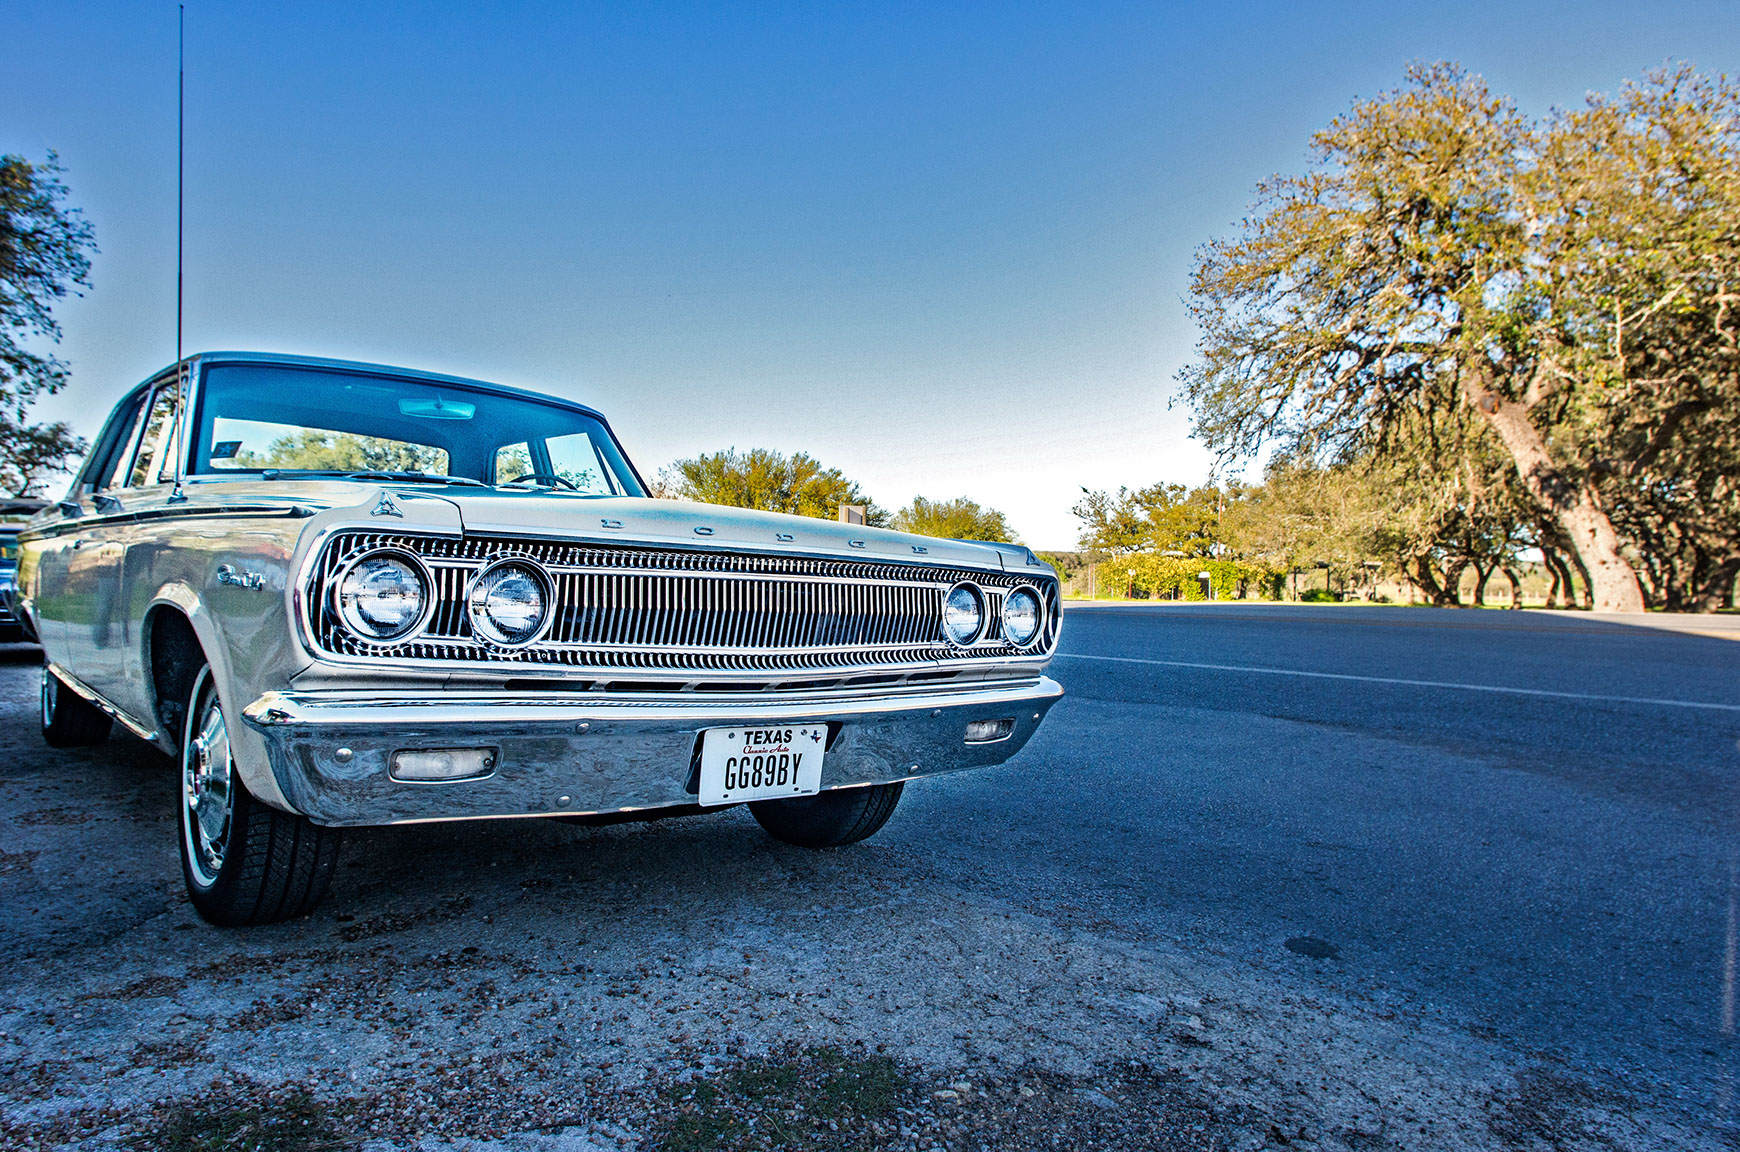 Classic 60's, the Coronet served as family sedans and 1/4 mile drag cars.